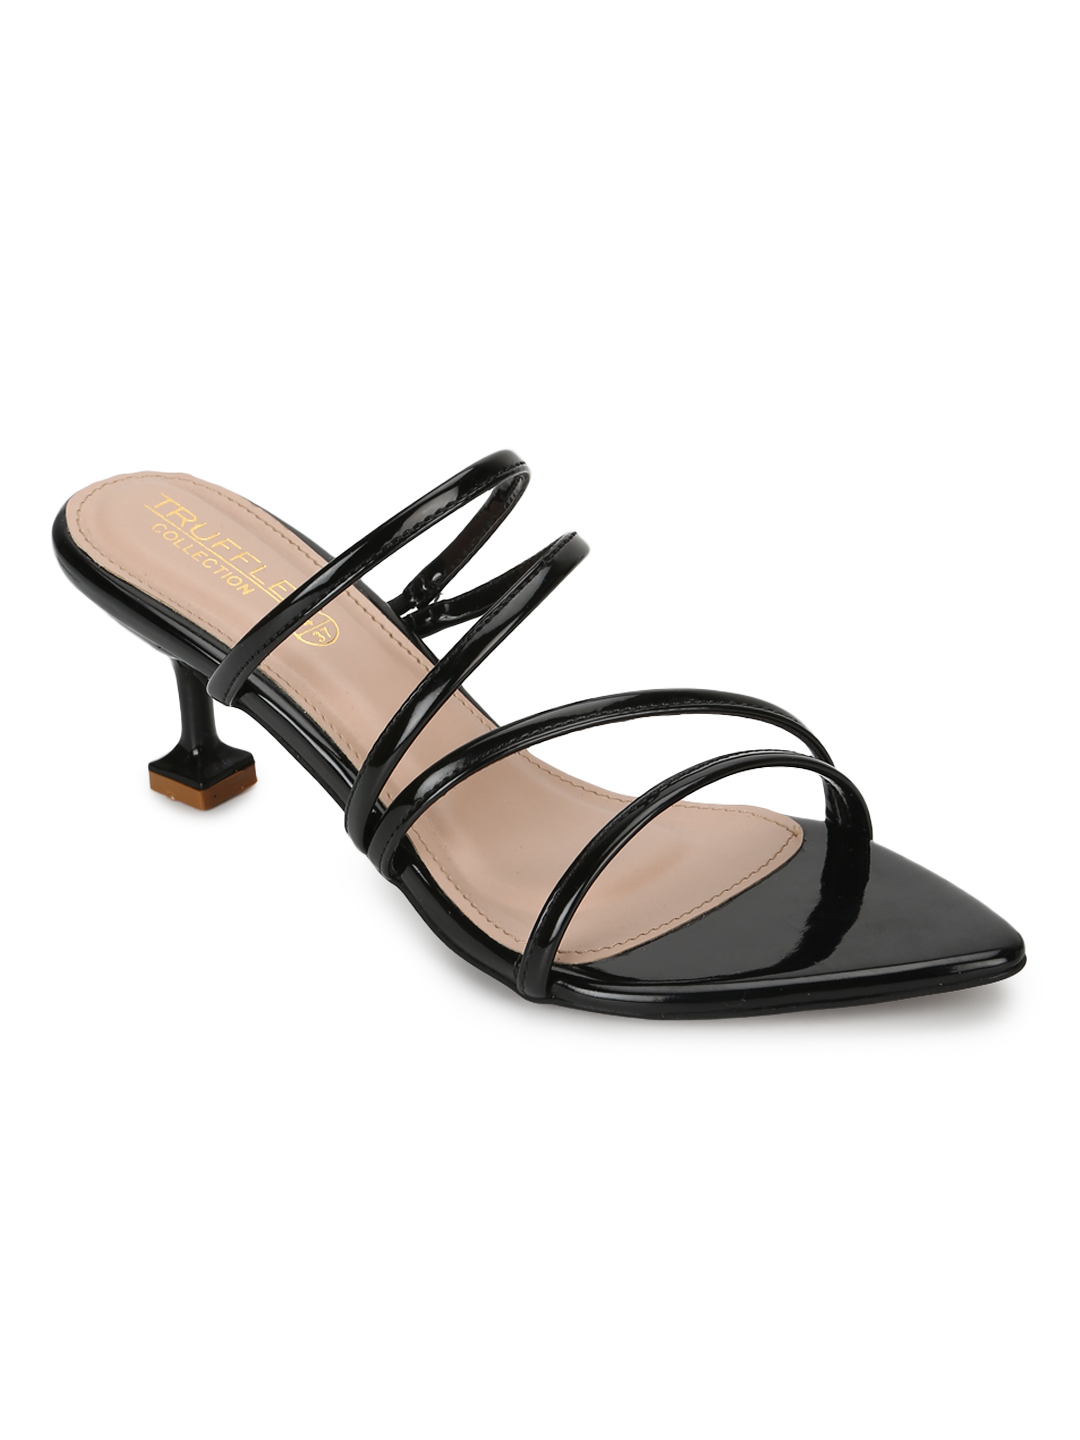 Truffle Collection   Truffle Collection Black Patent Pointy Toe Kitten Heels